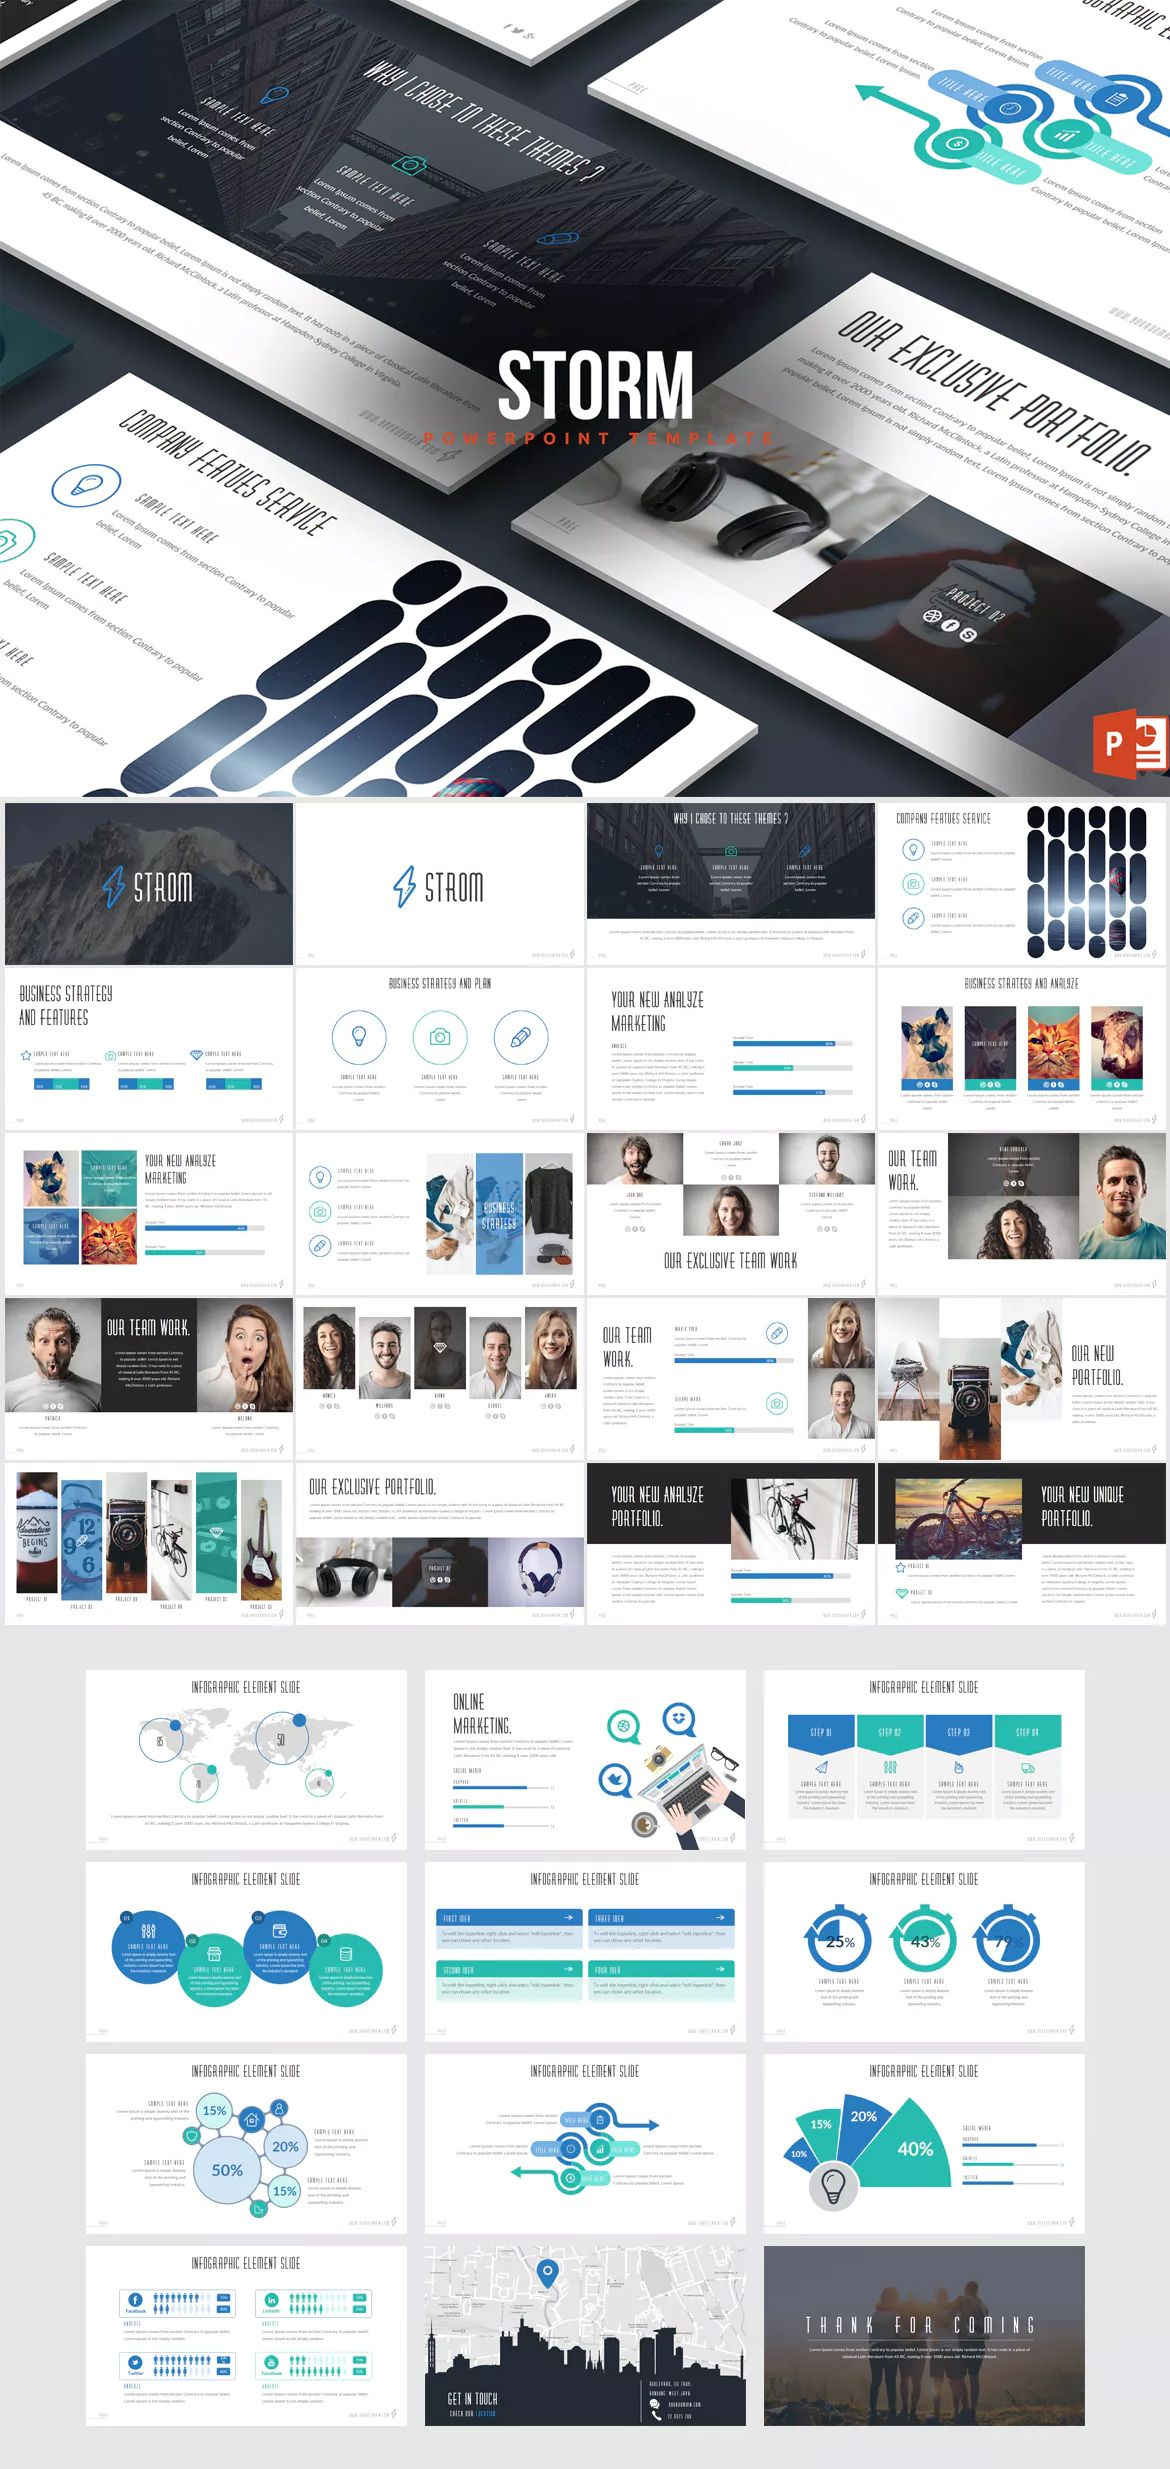 Strom Powerpoint Template By Inspirasign On Envato Elements Keynote Template Presentation Slides Templates Powerpoint Presentation Design